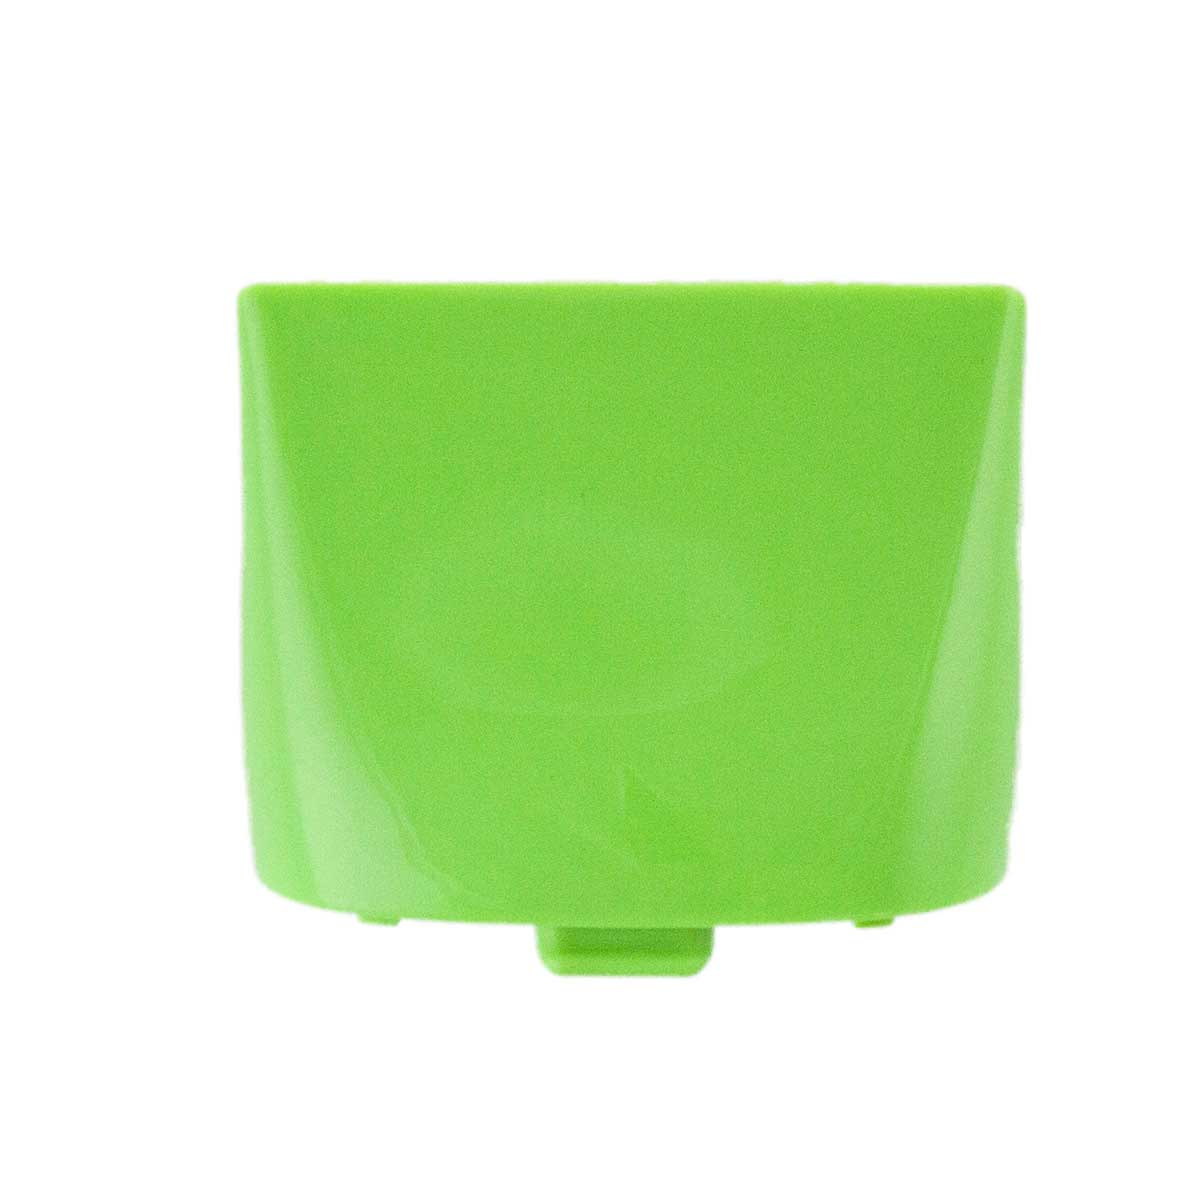 Green Drive Cap for Andis Excel 5 Speed Clipper